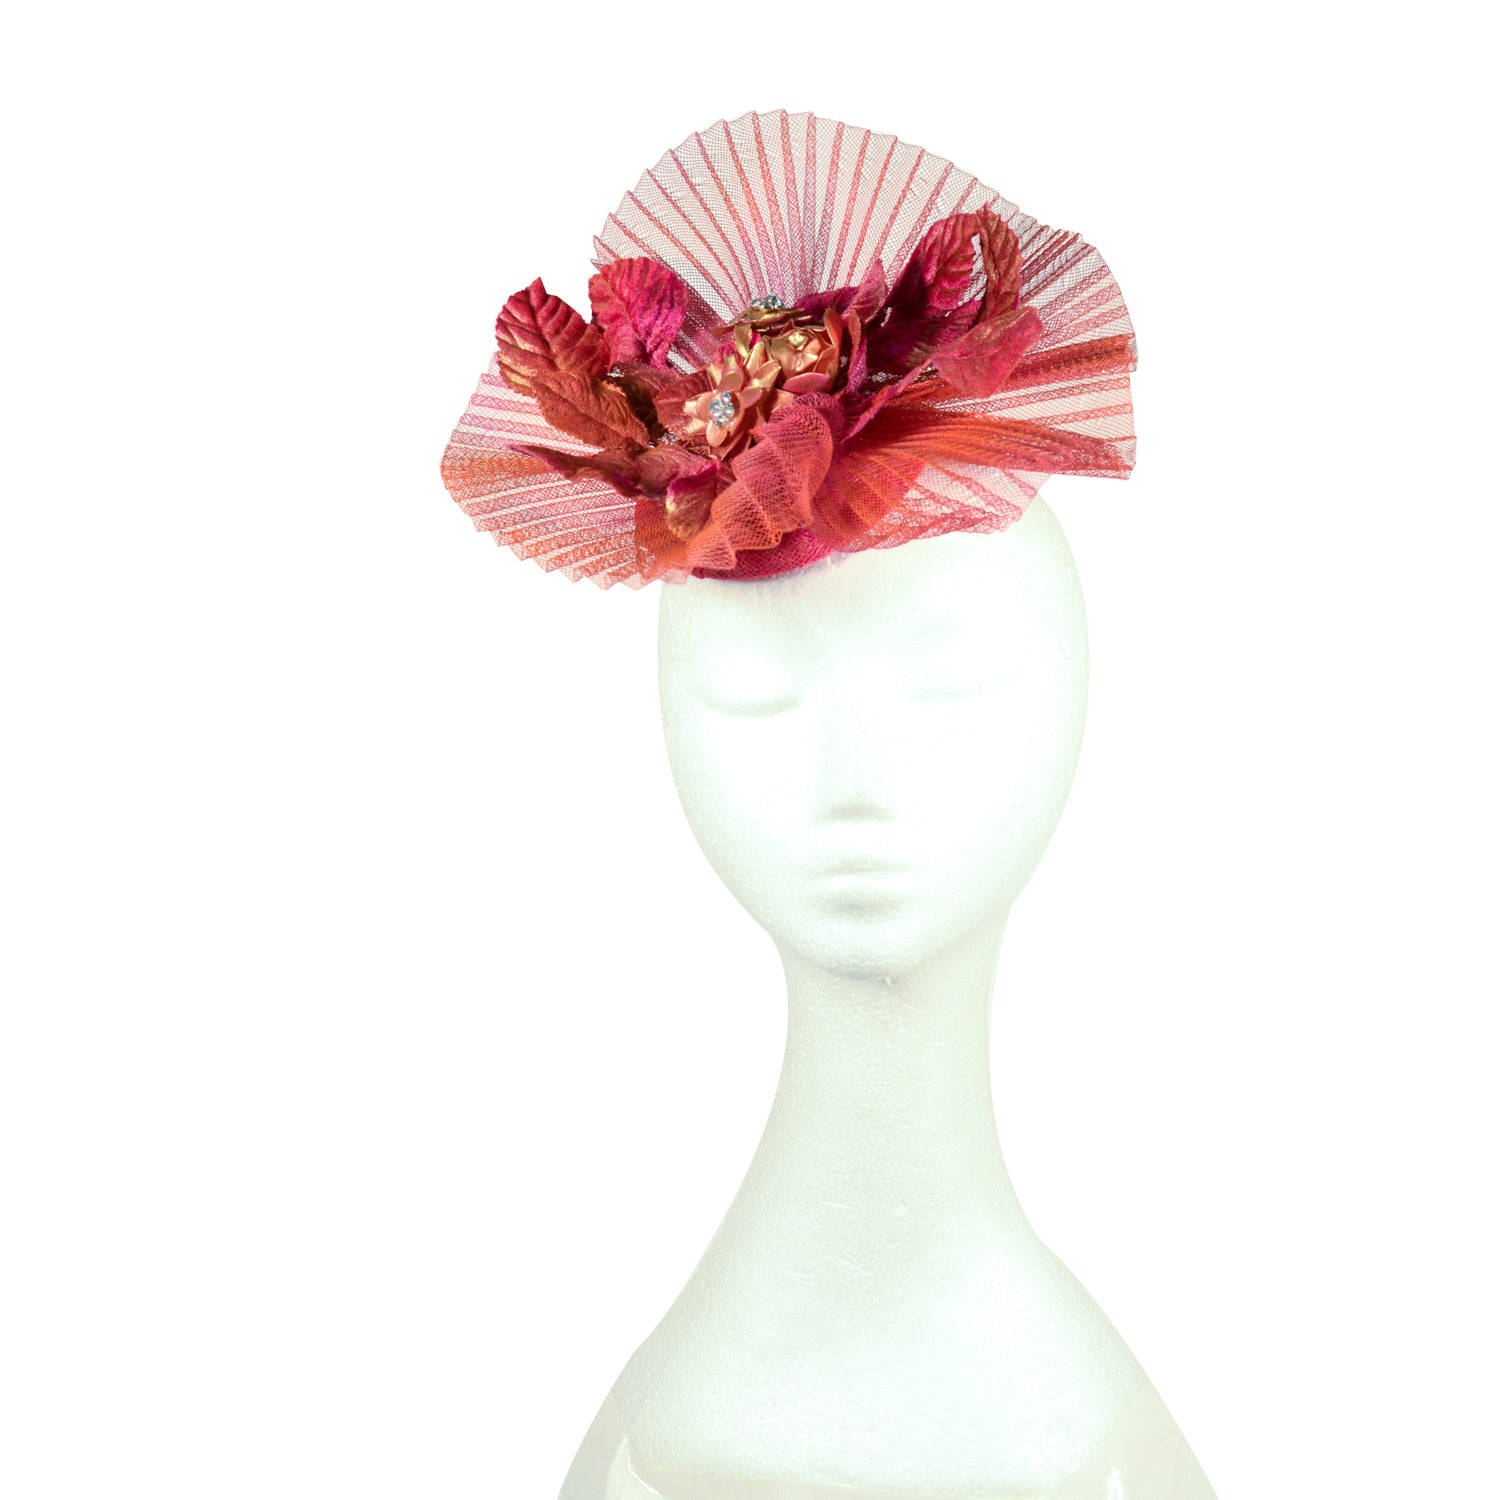 Pink /red and gold bespoke Julie perlouze fascinator with pleated crinolin from Paris